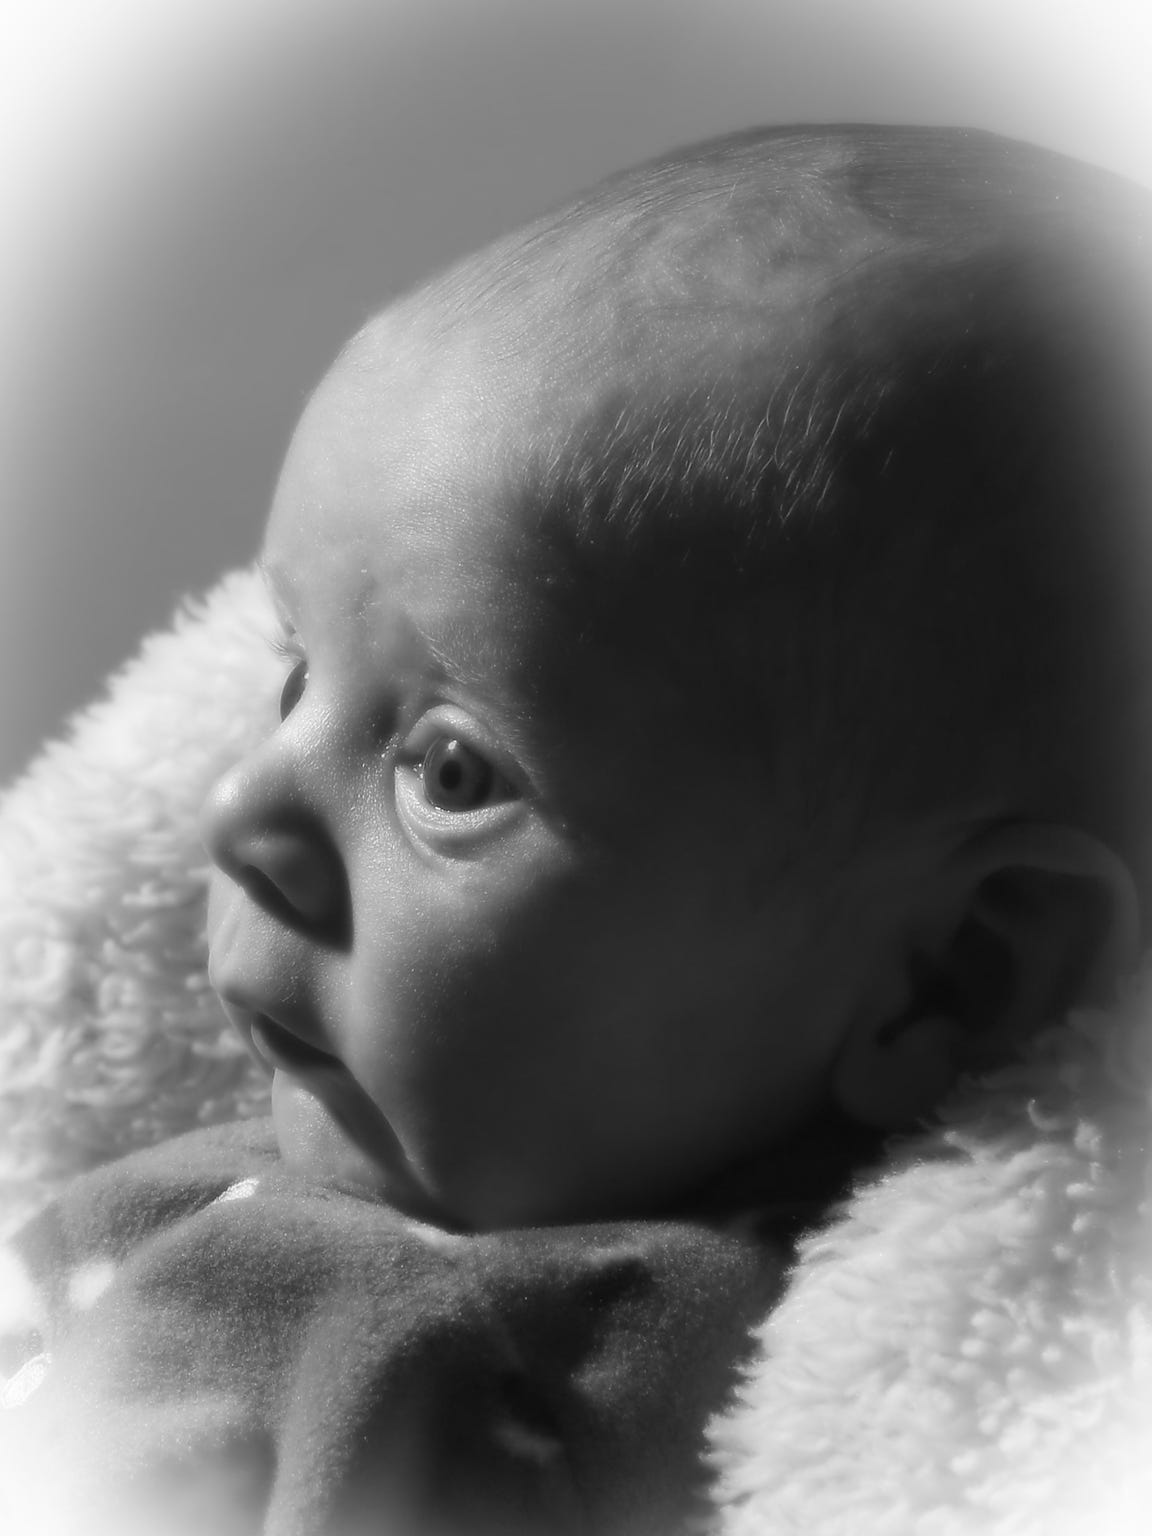 Baby Jerry is pictured prior to his traumatic brain injury in this studio portrait.